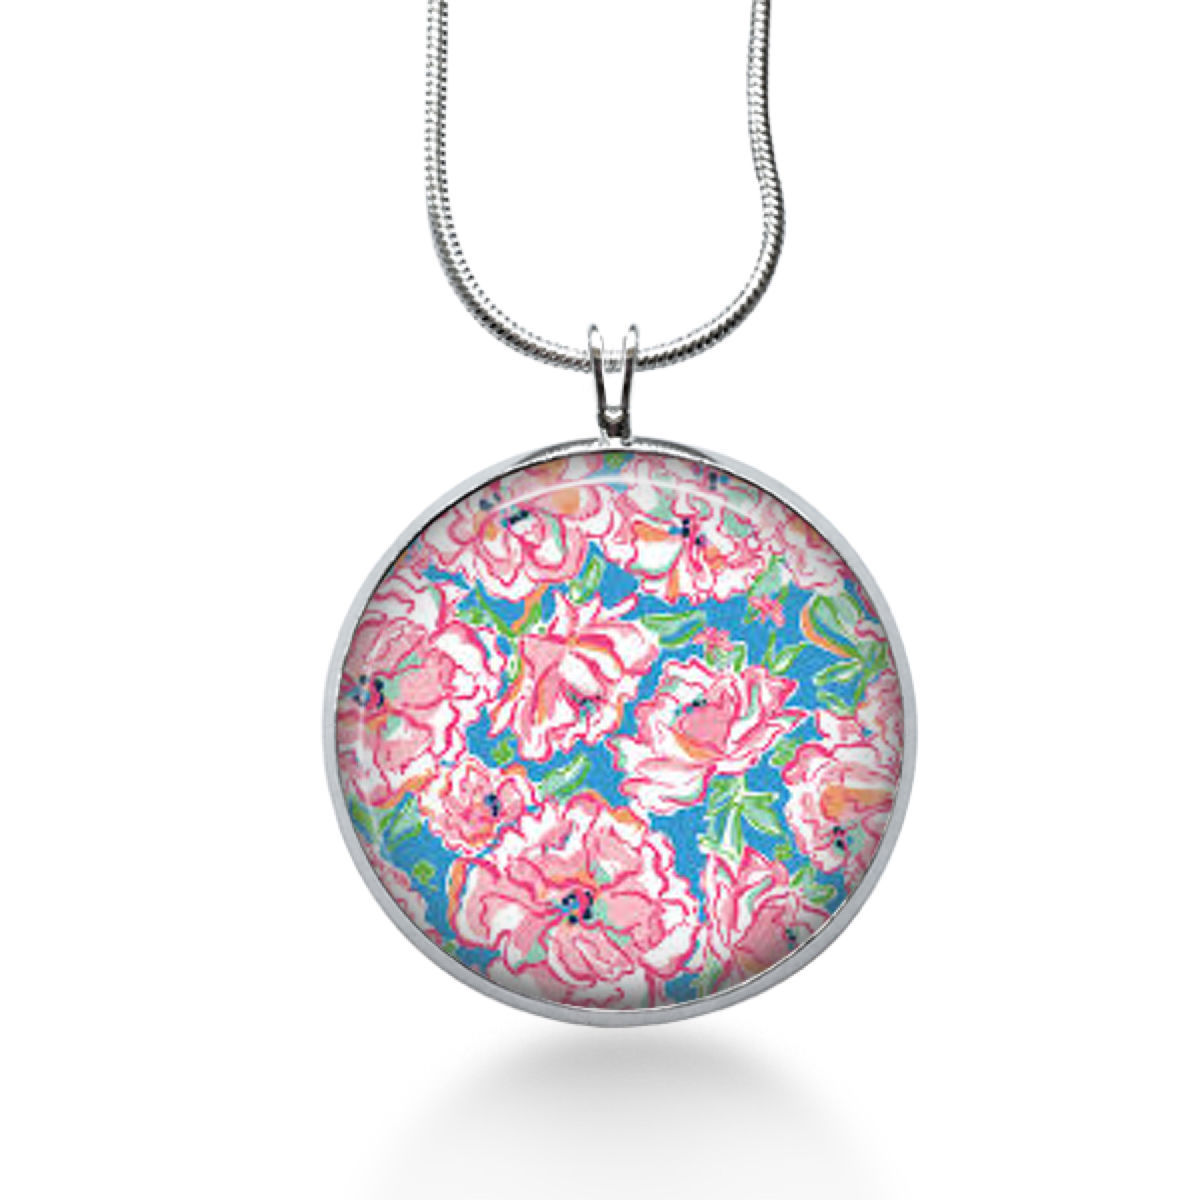 Lilly Pulitzer Inspired Necklace,Lilly Pendant, Pink Flower,floral,gifts for her